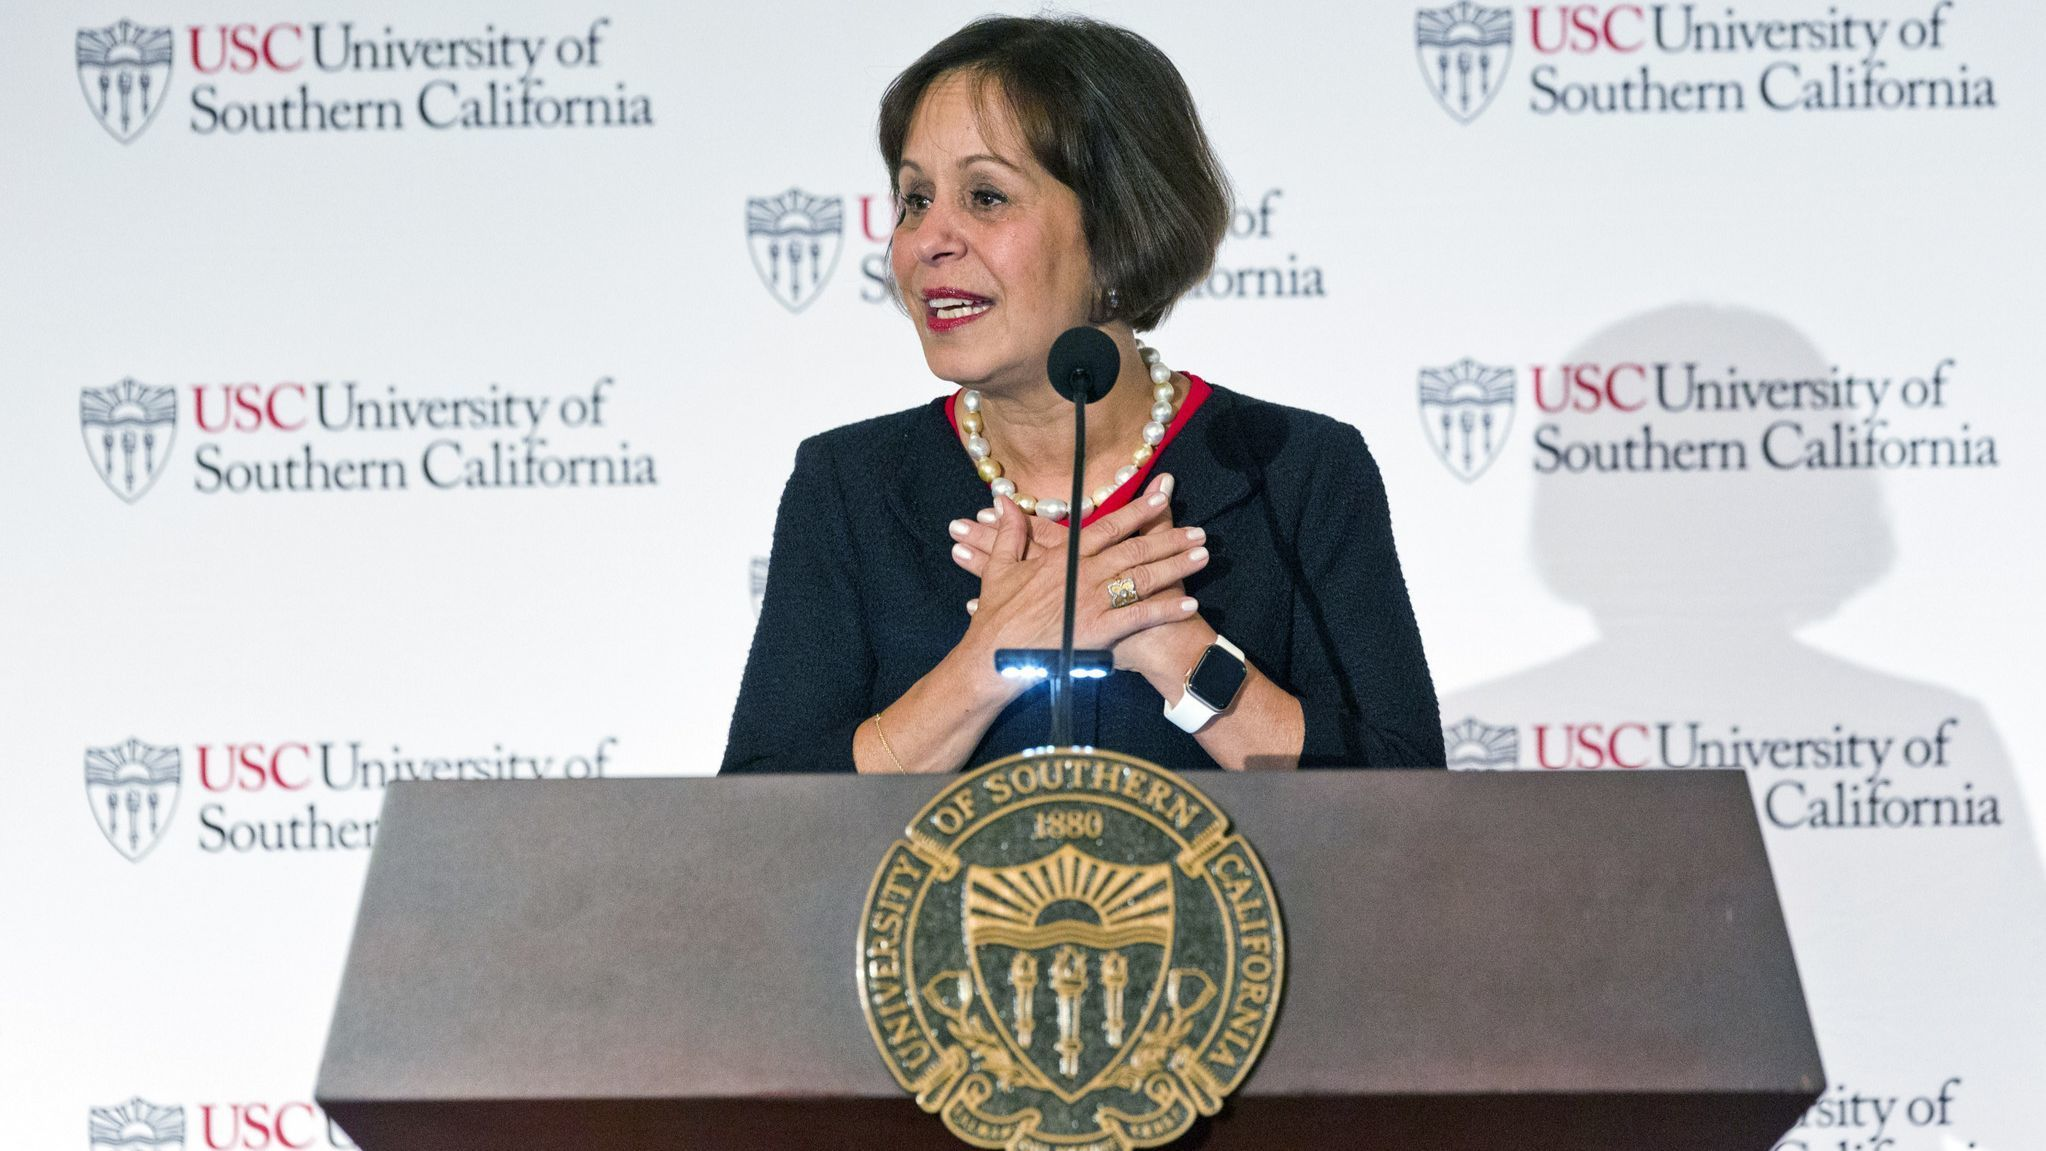 USC's new president Carol Folt can't fix the school's problems by herself